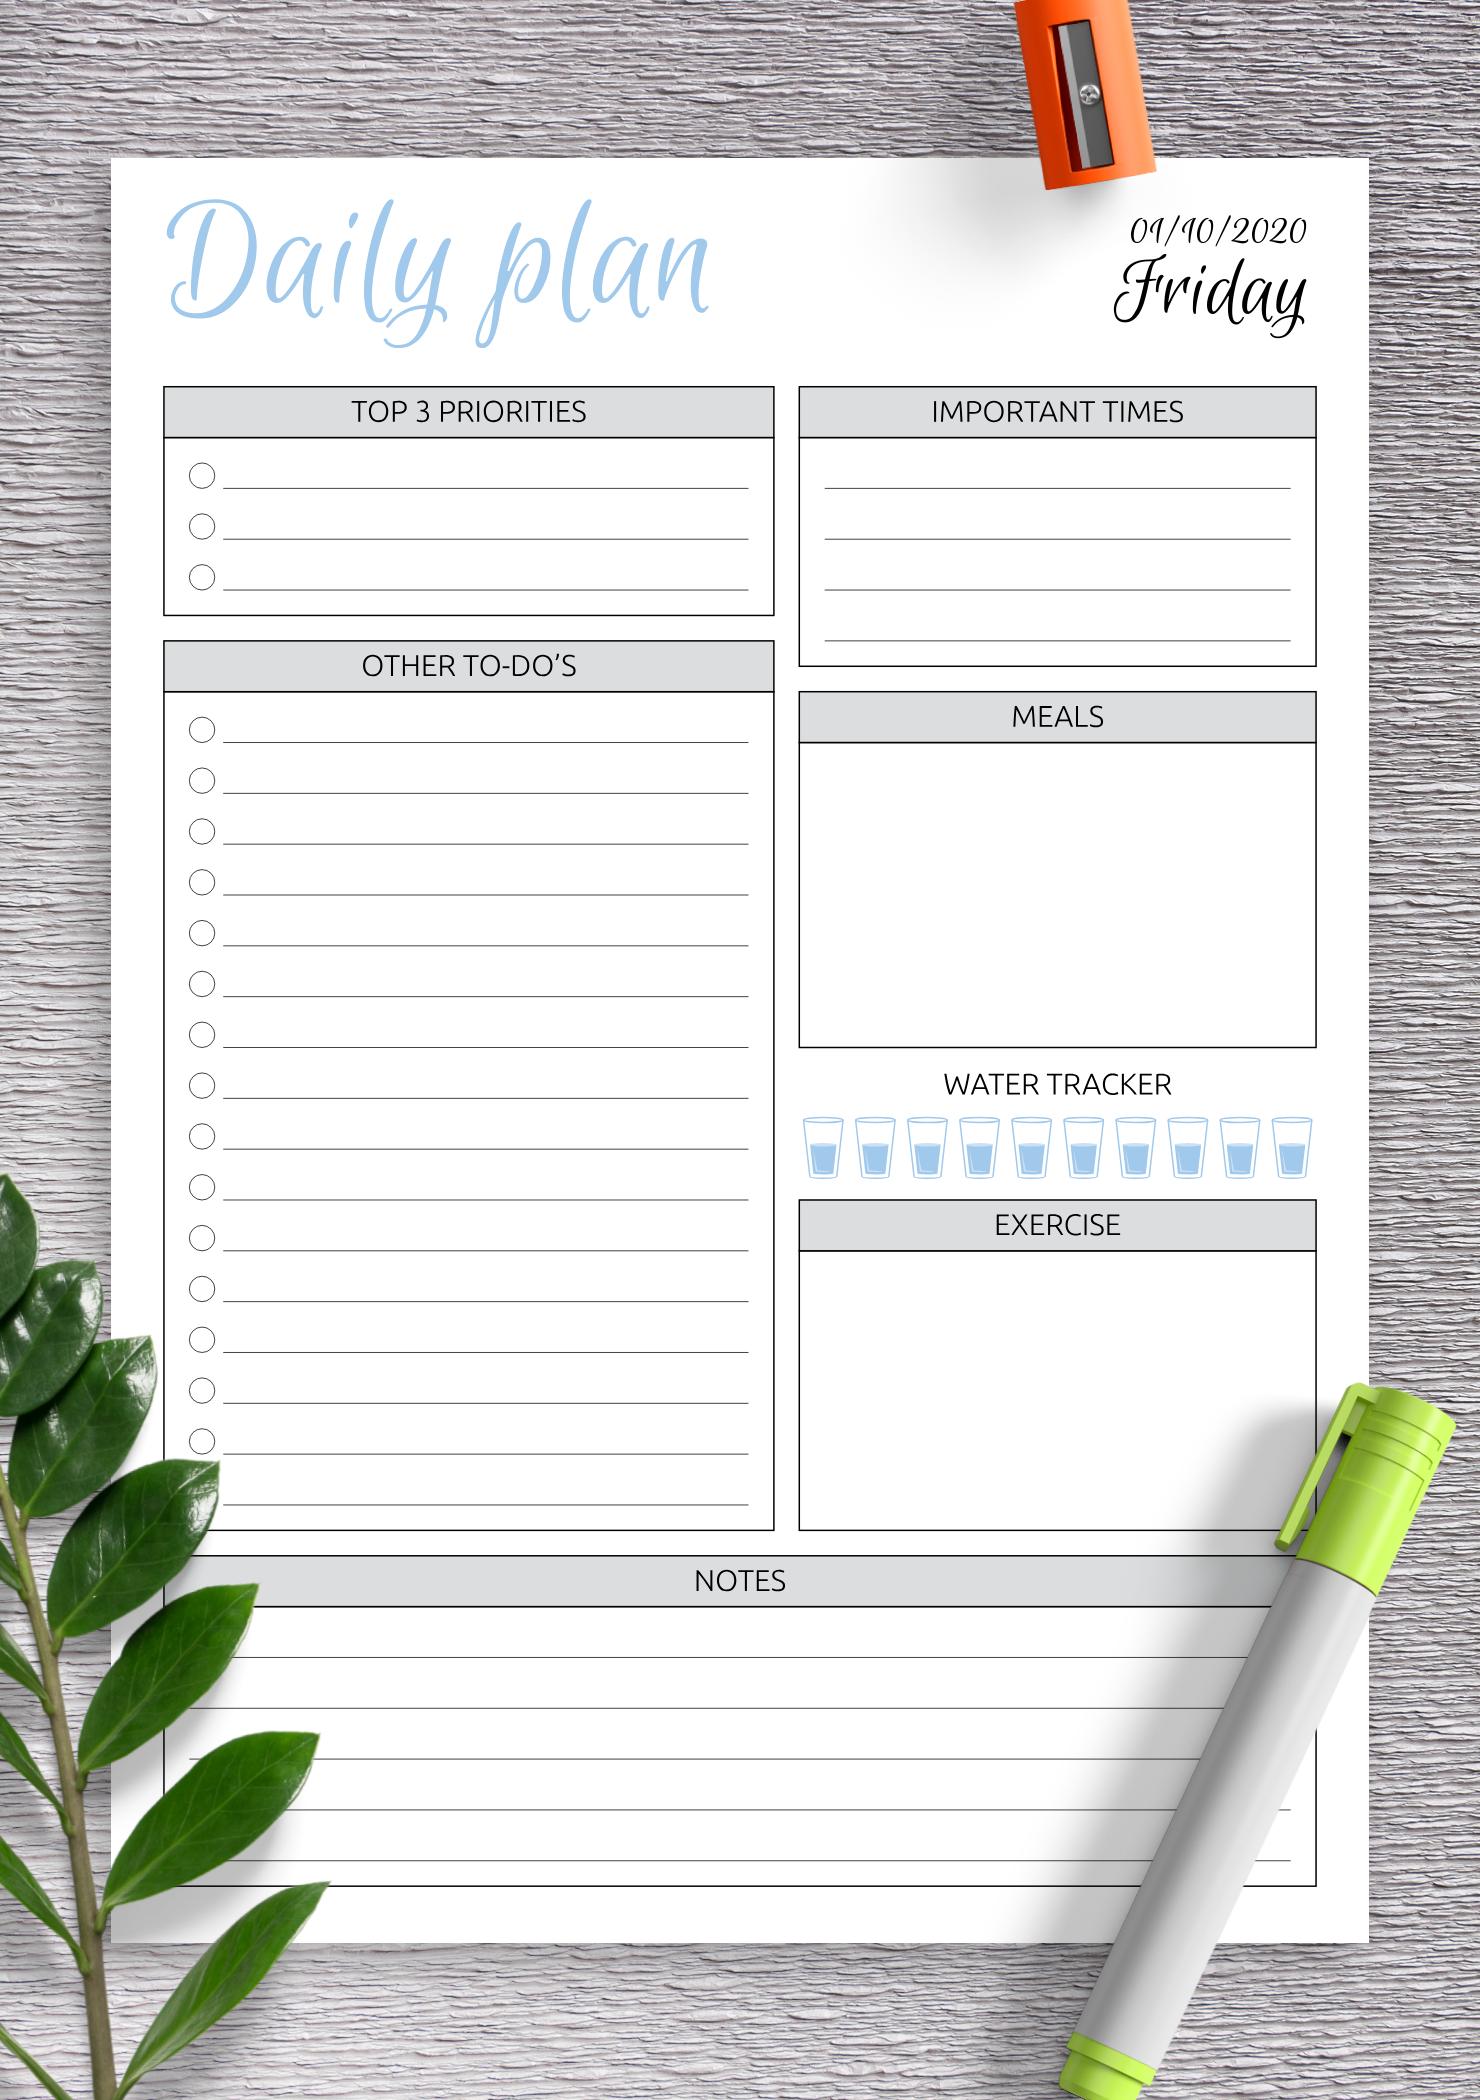 Stupendous image in to do list pdf